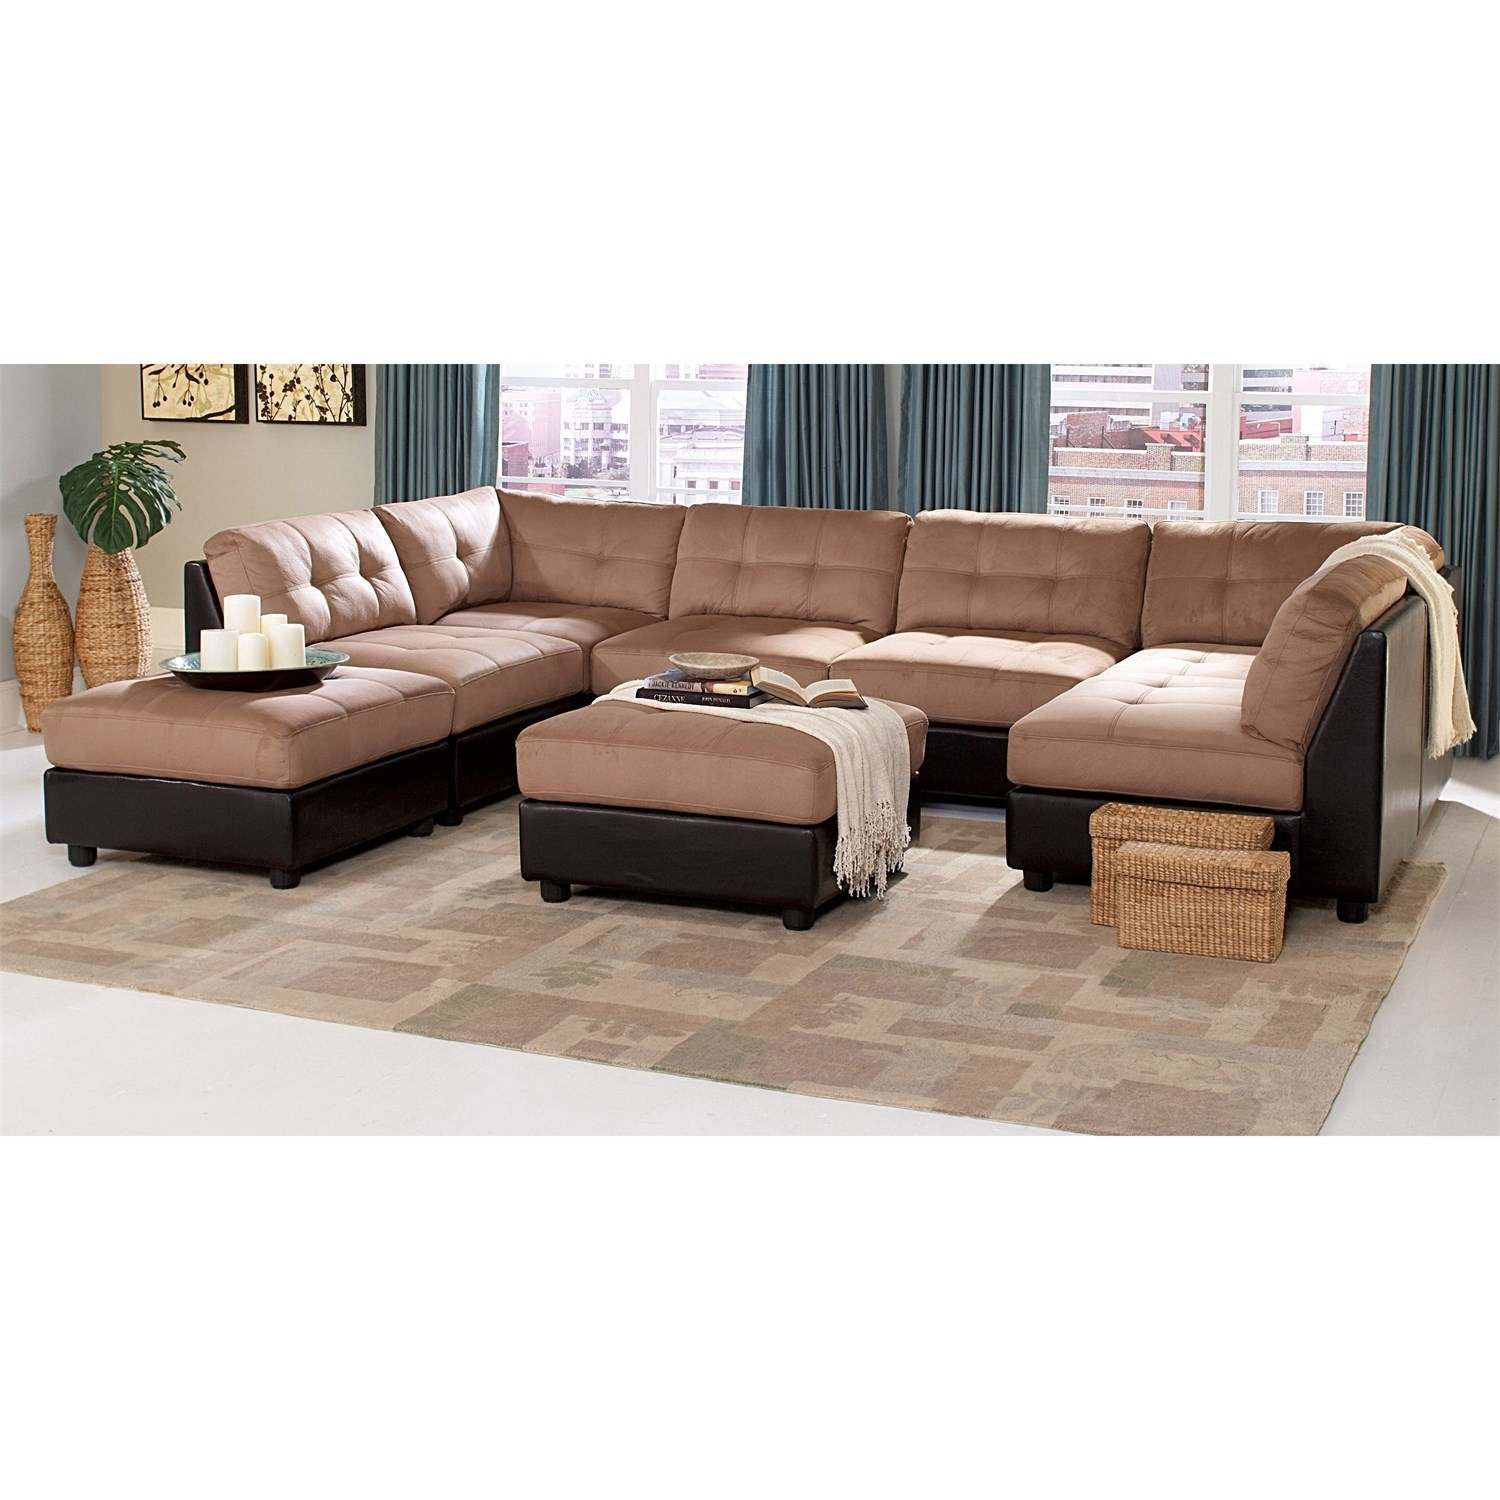 Coaster Furniture 551001/4 551002/2 Claude 6 Piece Brown Sectional Intended For Macon Ga Sectional Sofas (Image 4 of 10)